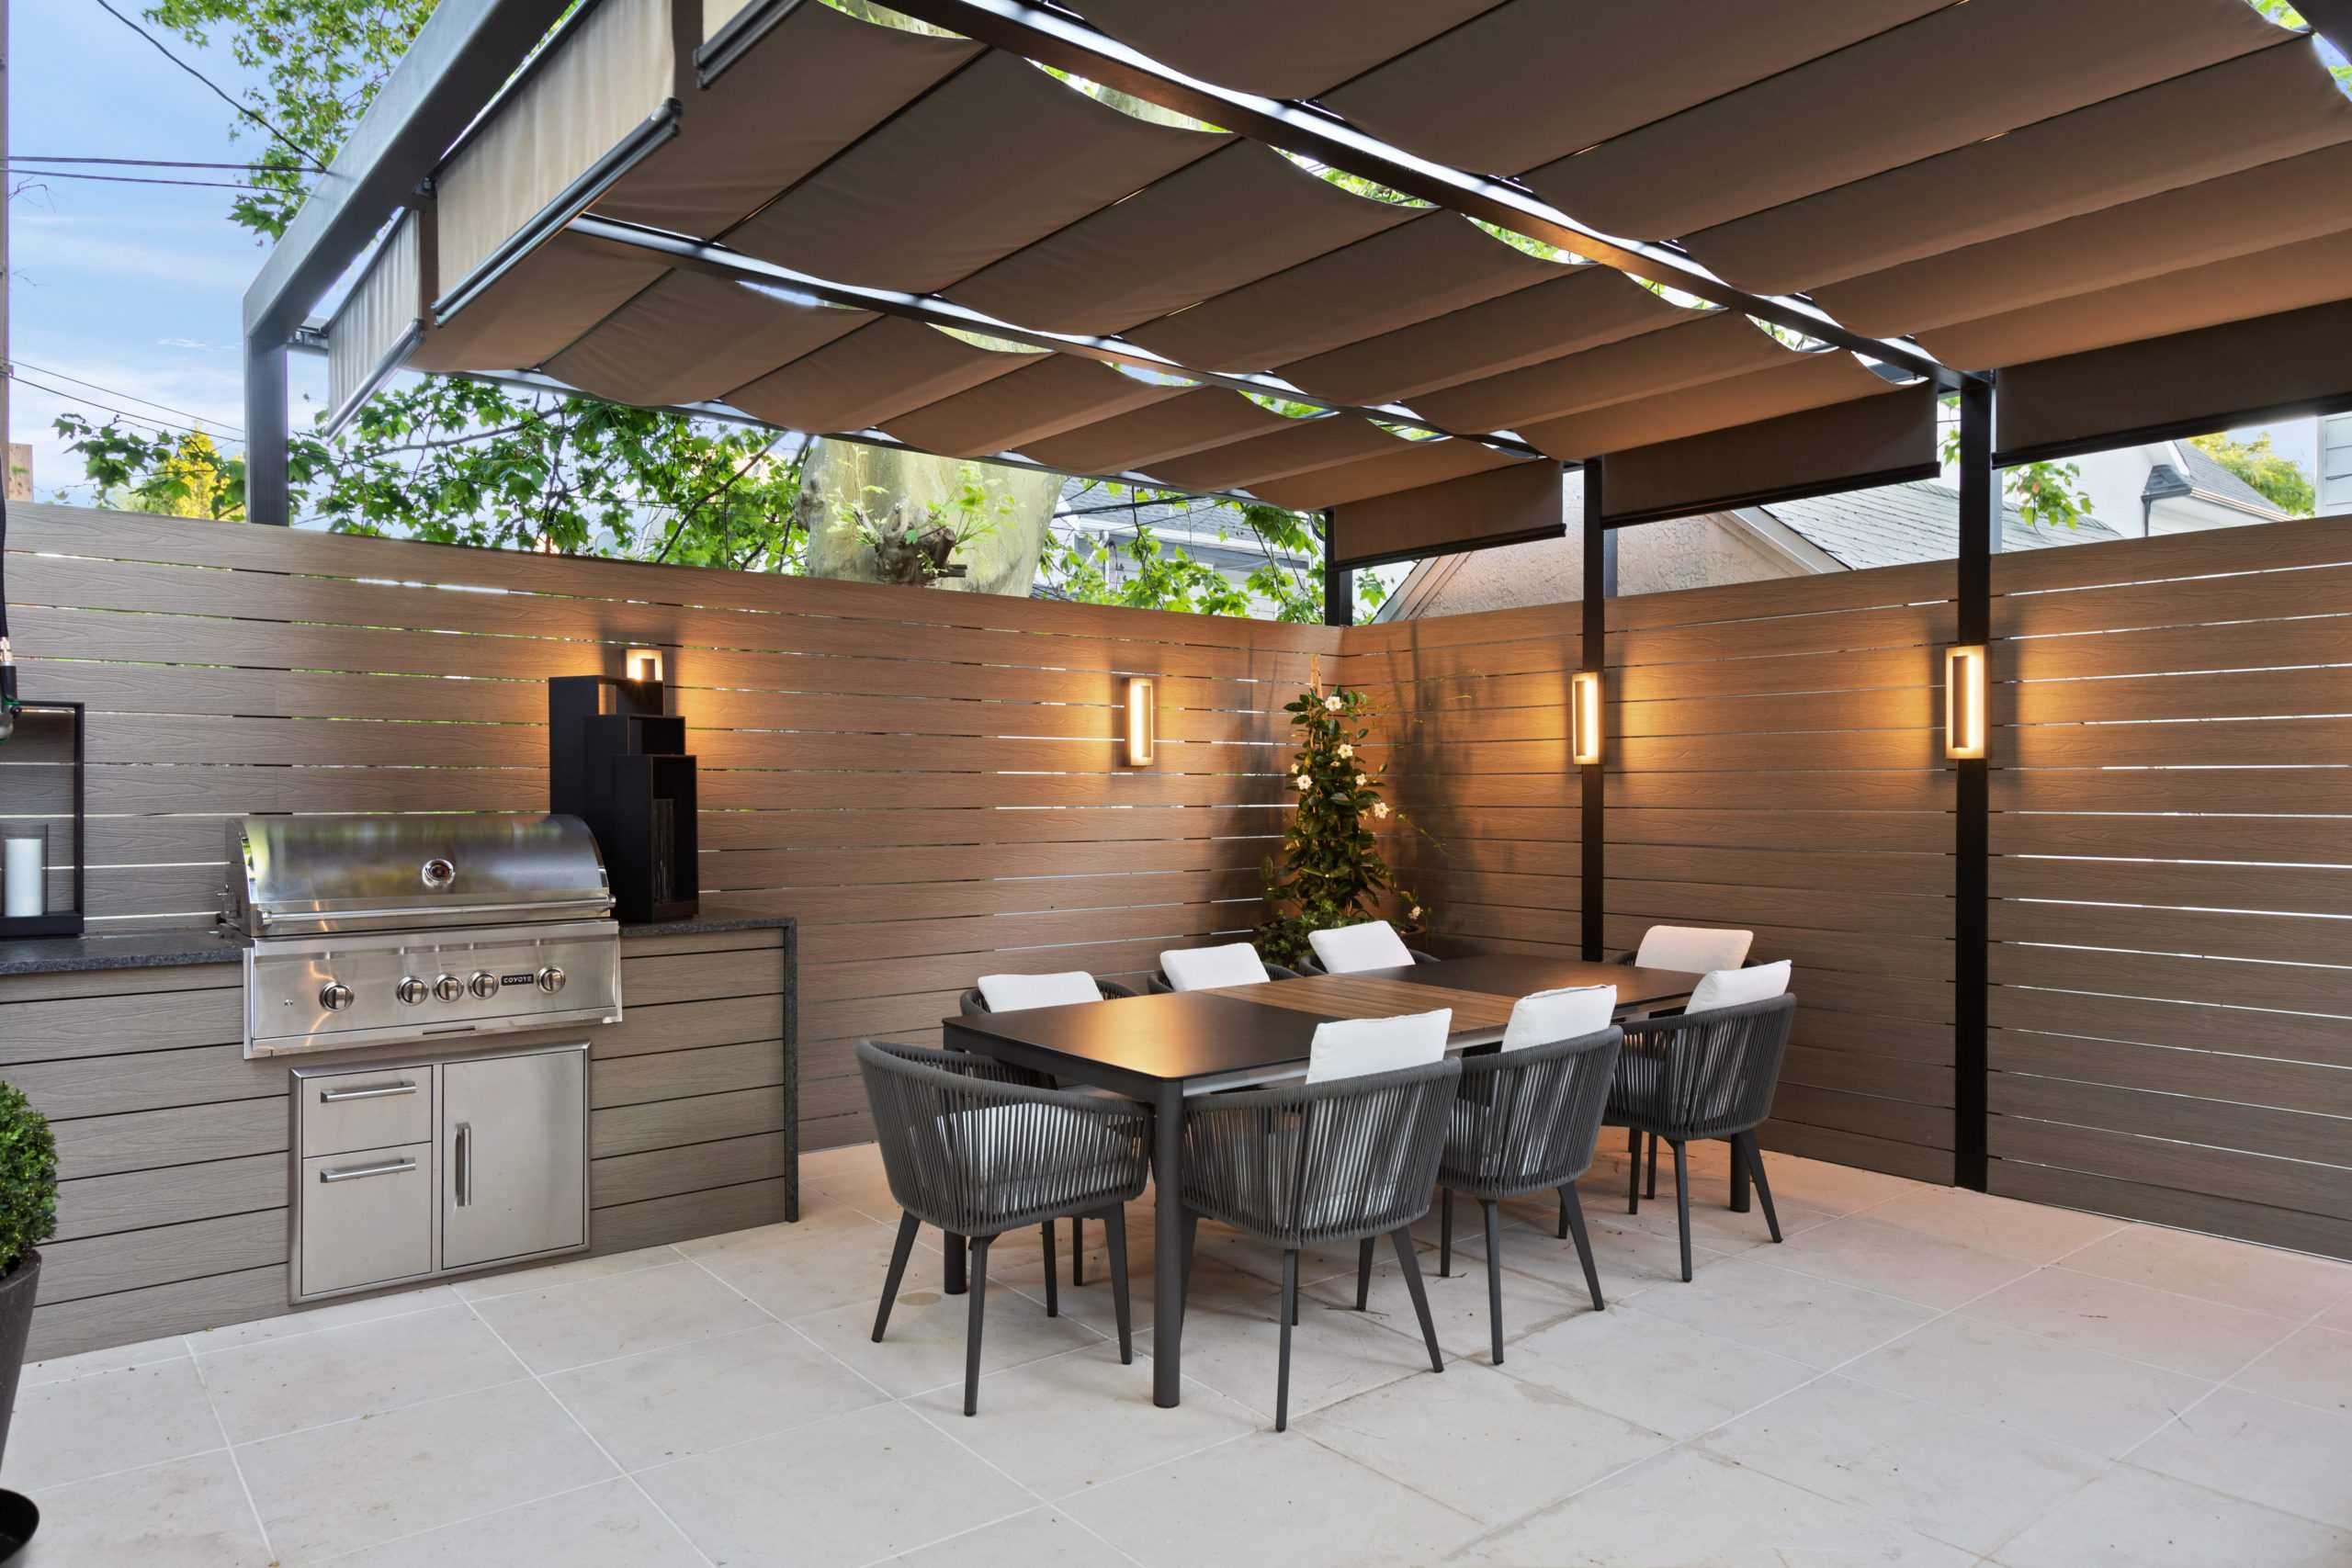 Table and chairs, retractable awning